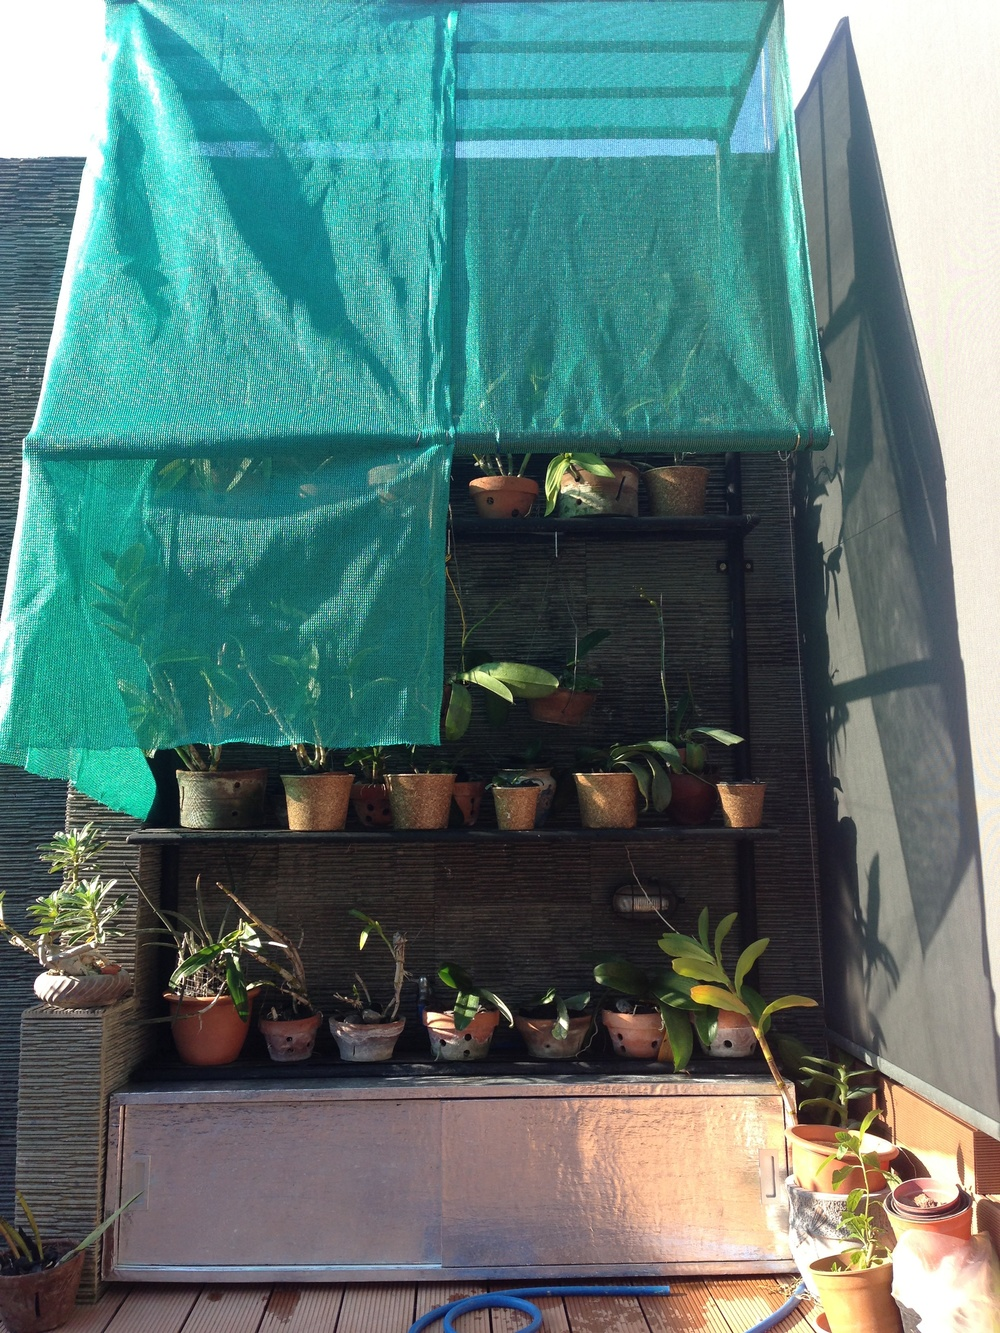 Dad's orchids finally have a new shelter :)